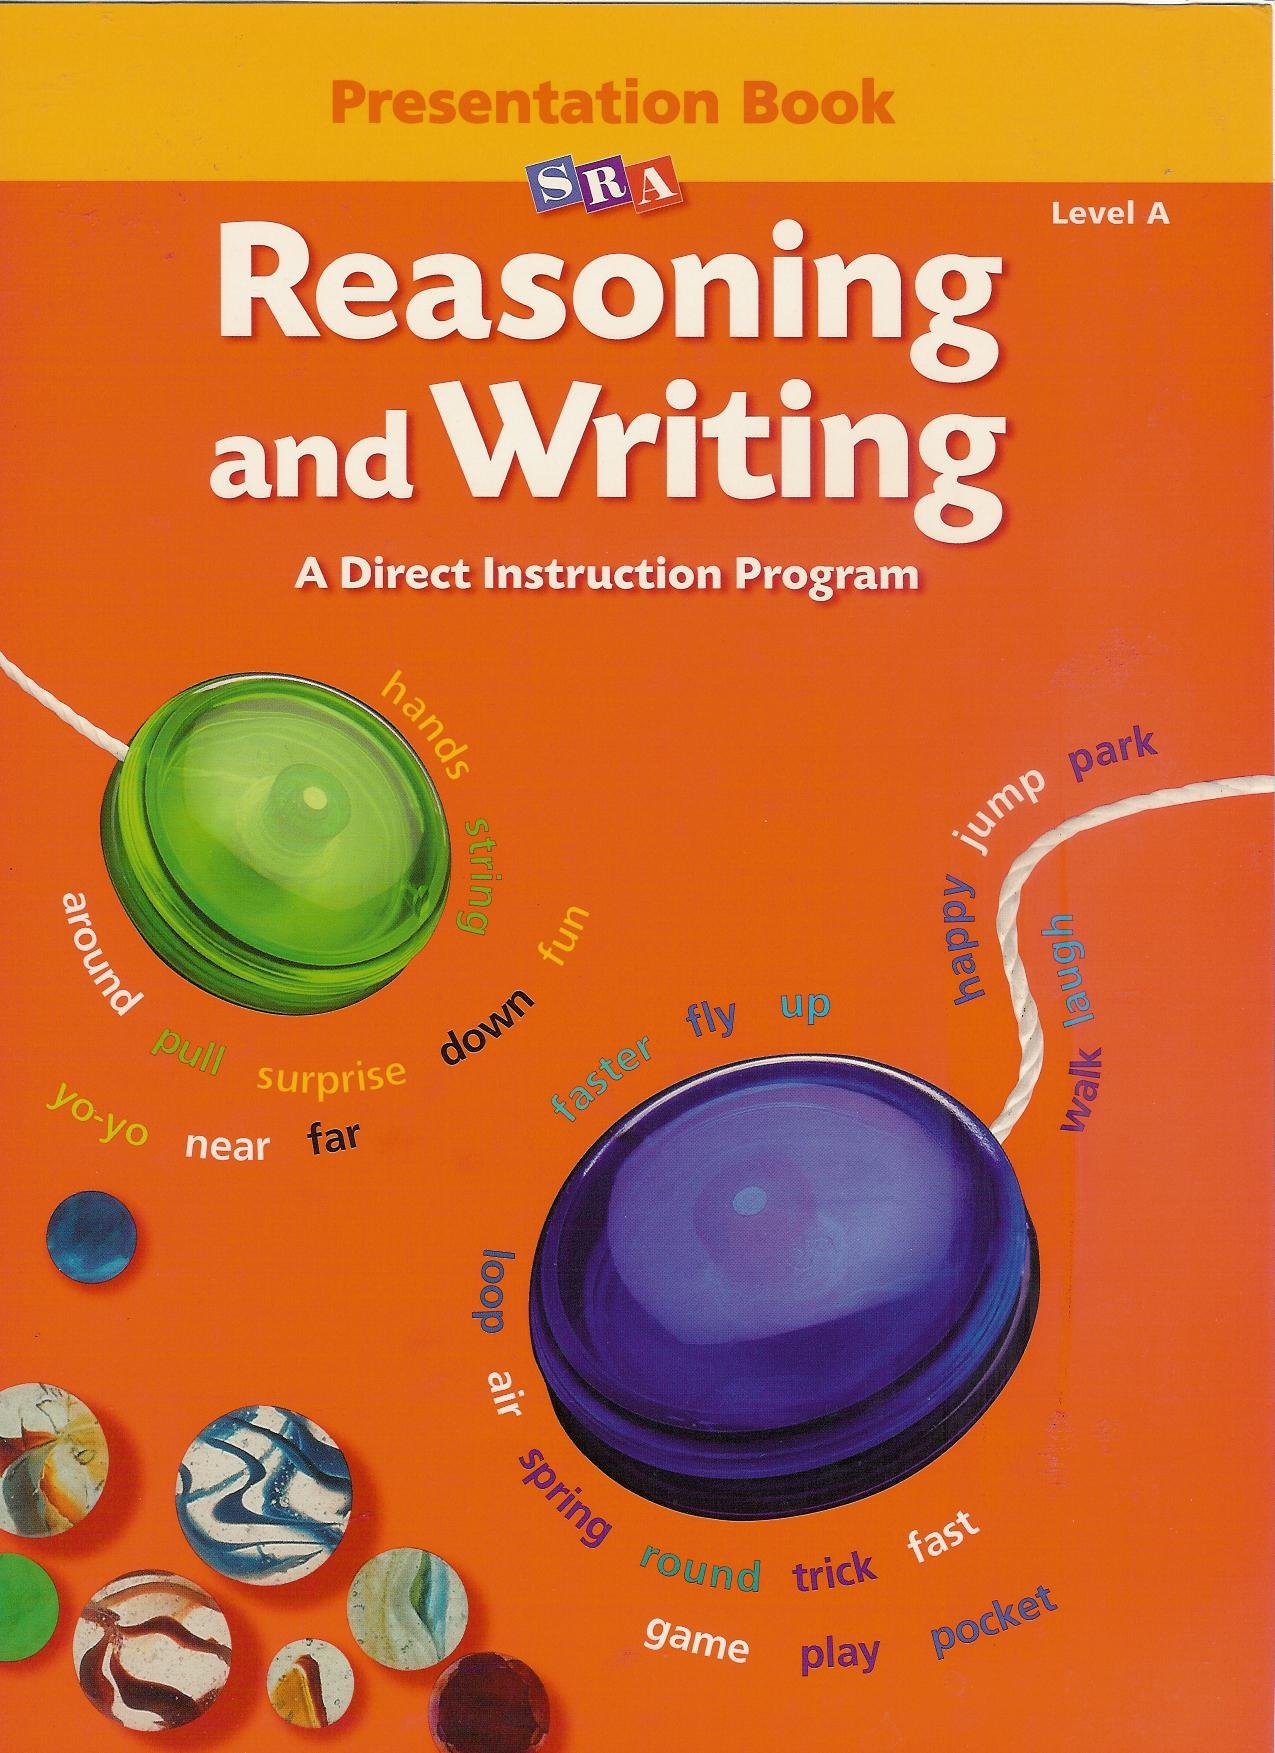 Sra Reasoning And Writing Level A Presentation Book Siegrried